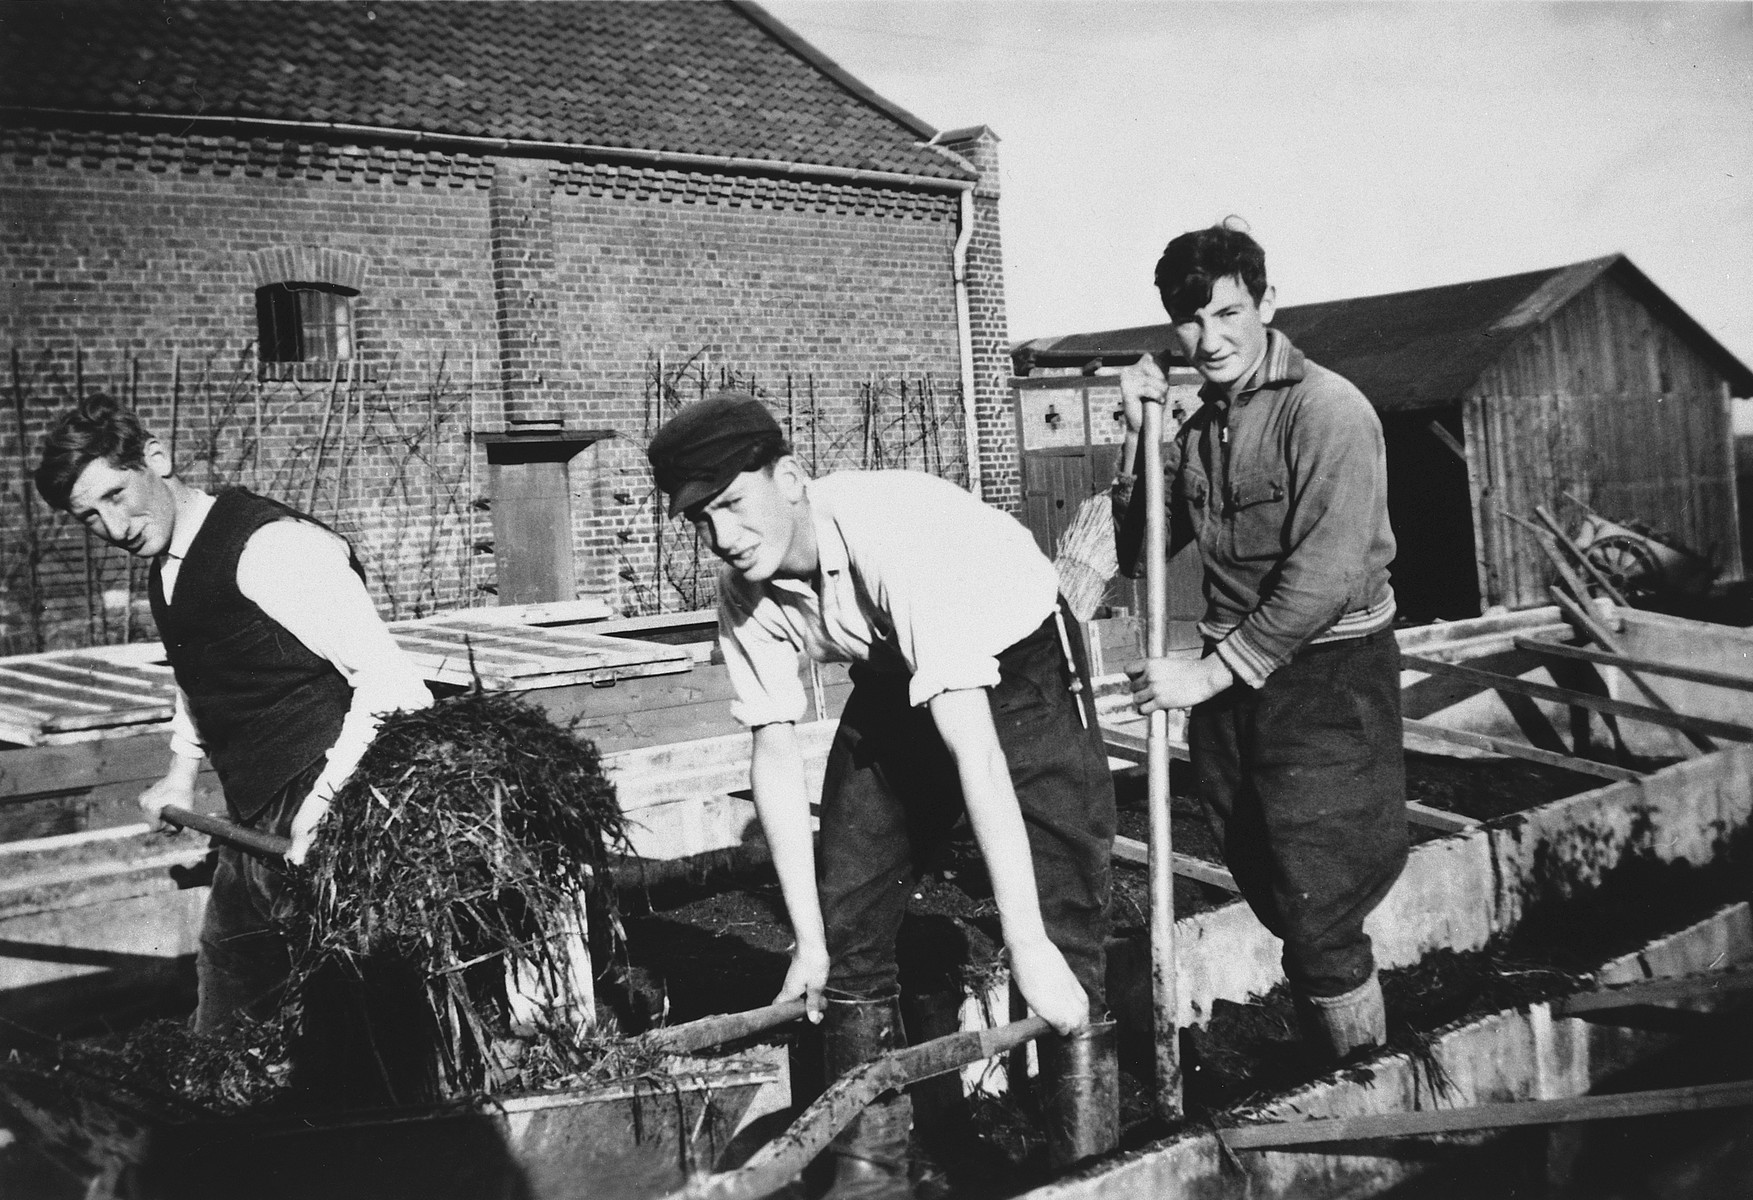 Three Jewish-German youth learn agricultural skills at a training farm in Dahlem on the outskirts of Berlin.  Ernst Meyer is standing on the far left.